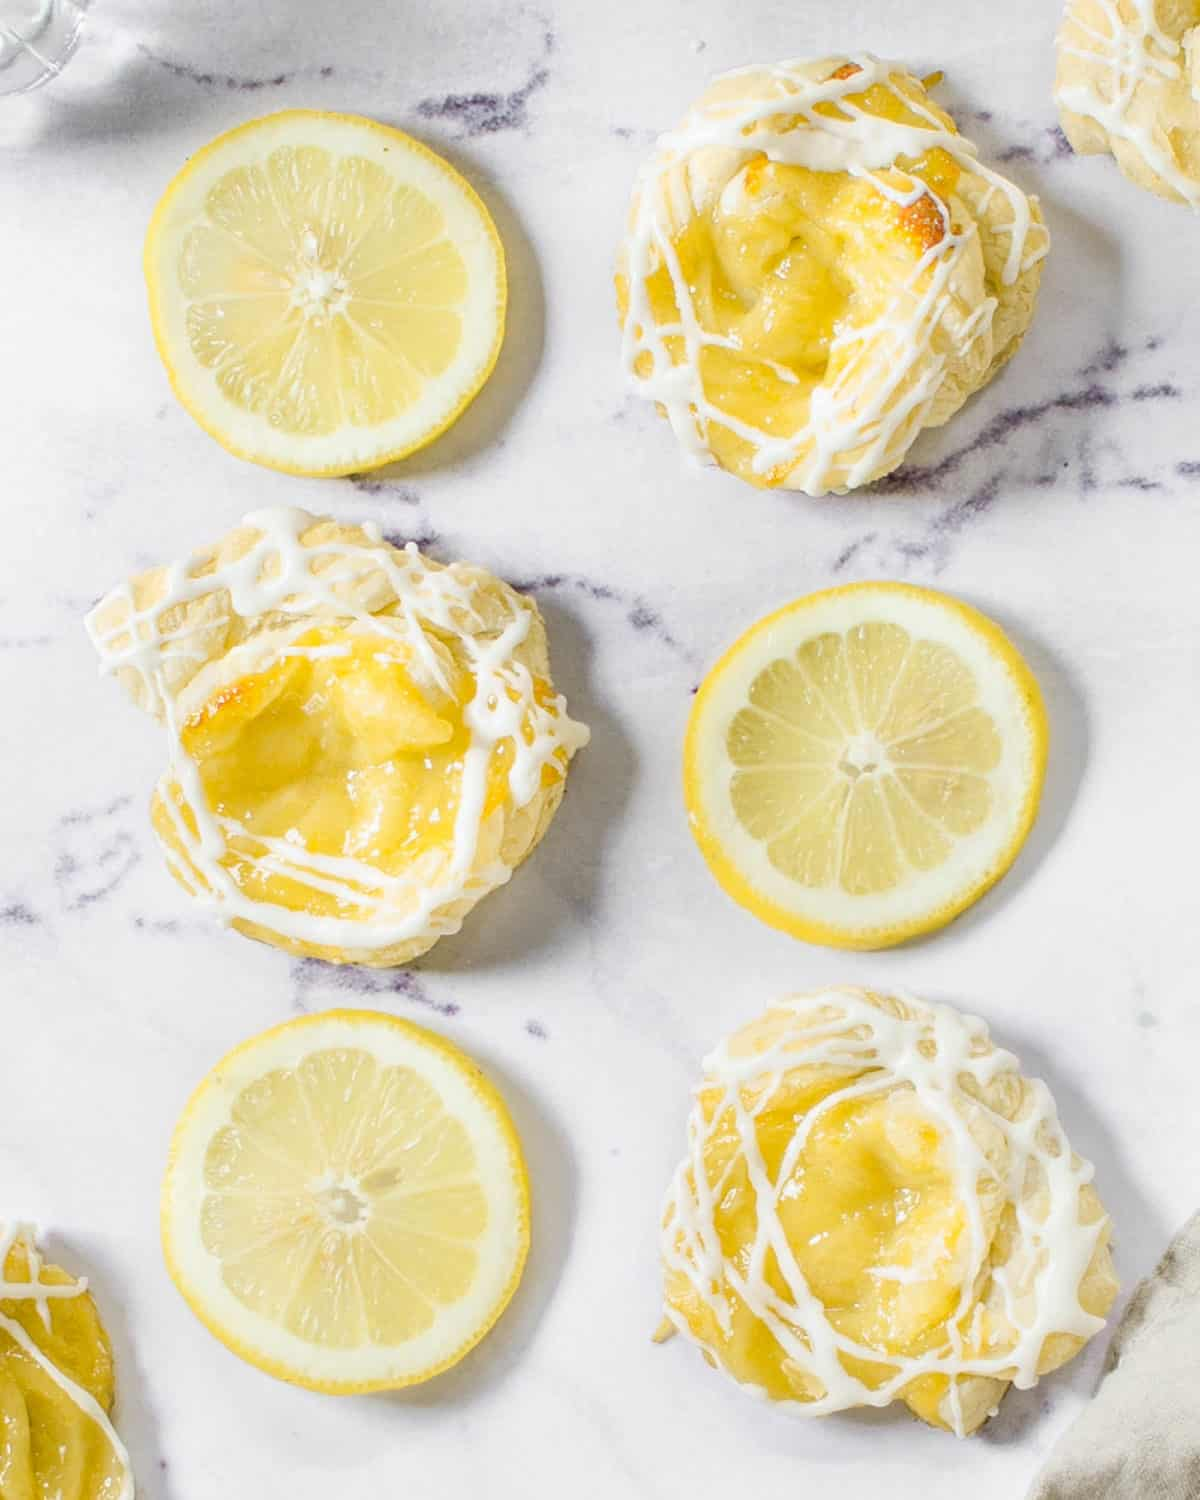 Lemon curd puff pastries spread out on a table with lemons.